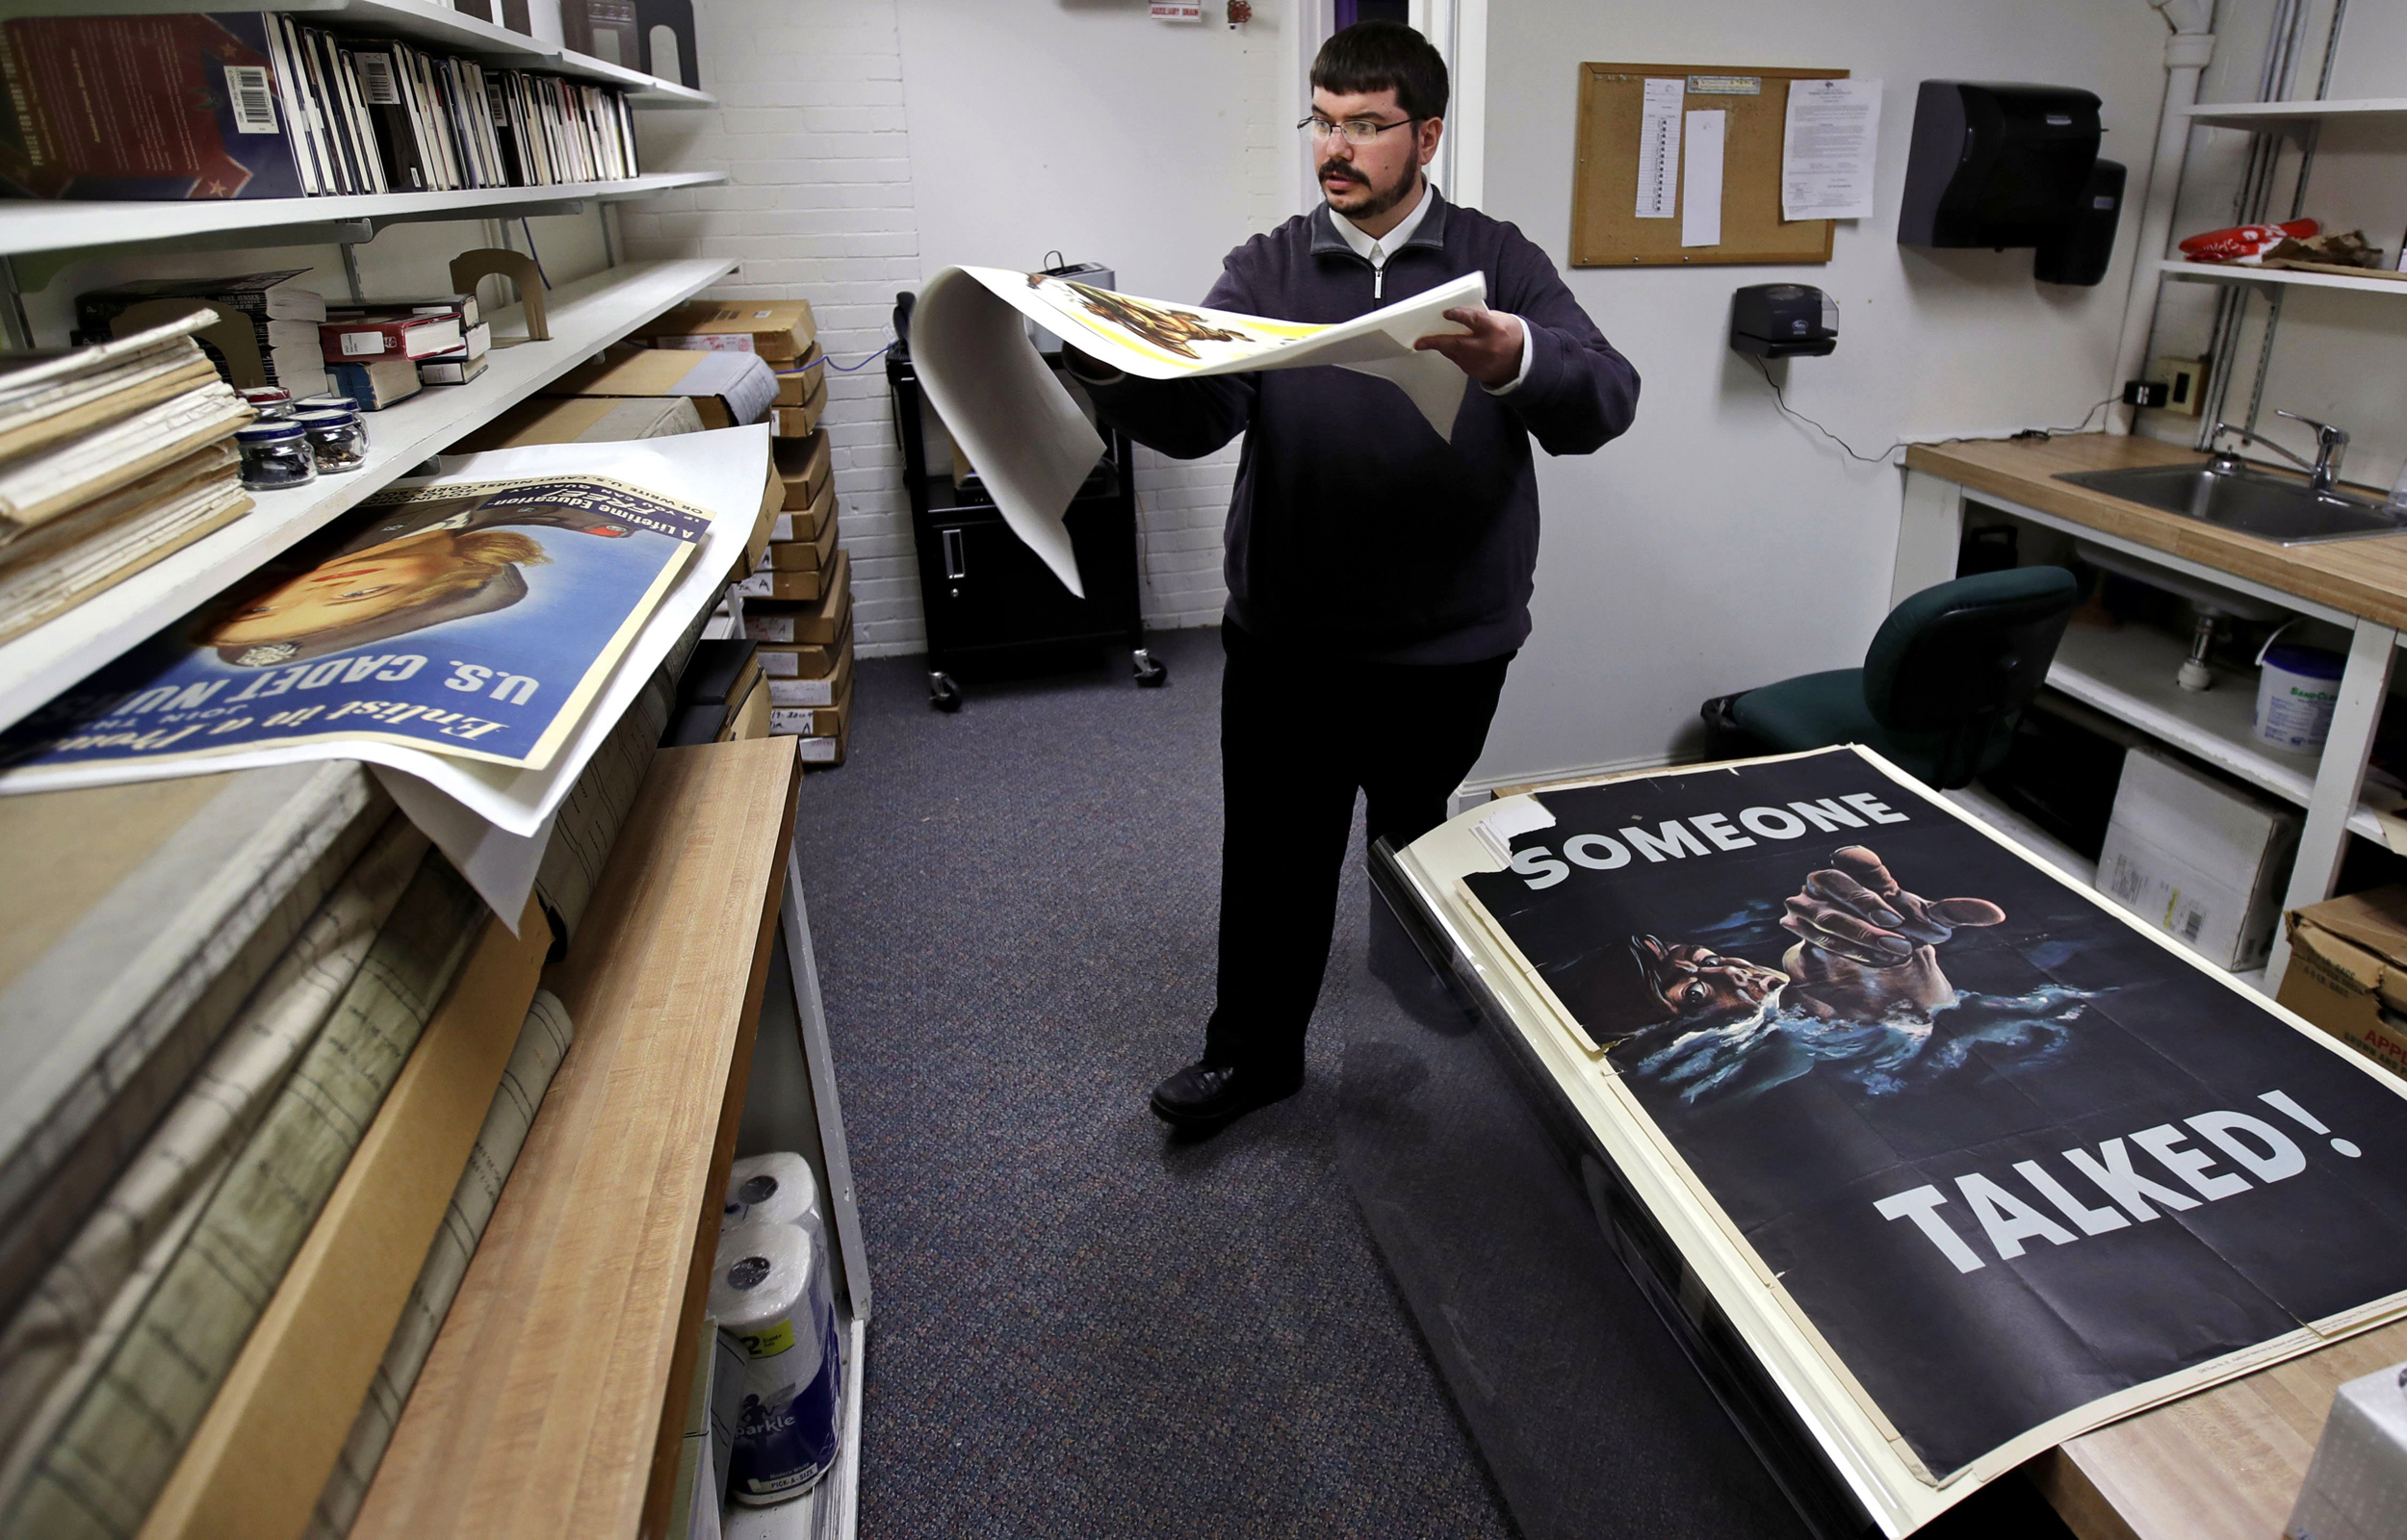 Trove-of-war-posters-discovered-at-New-Hampshire-library